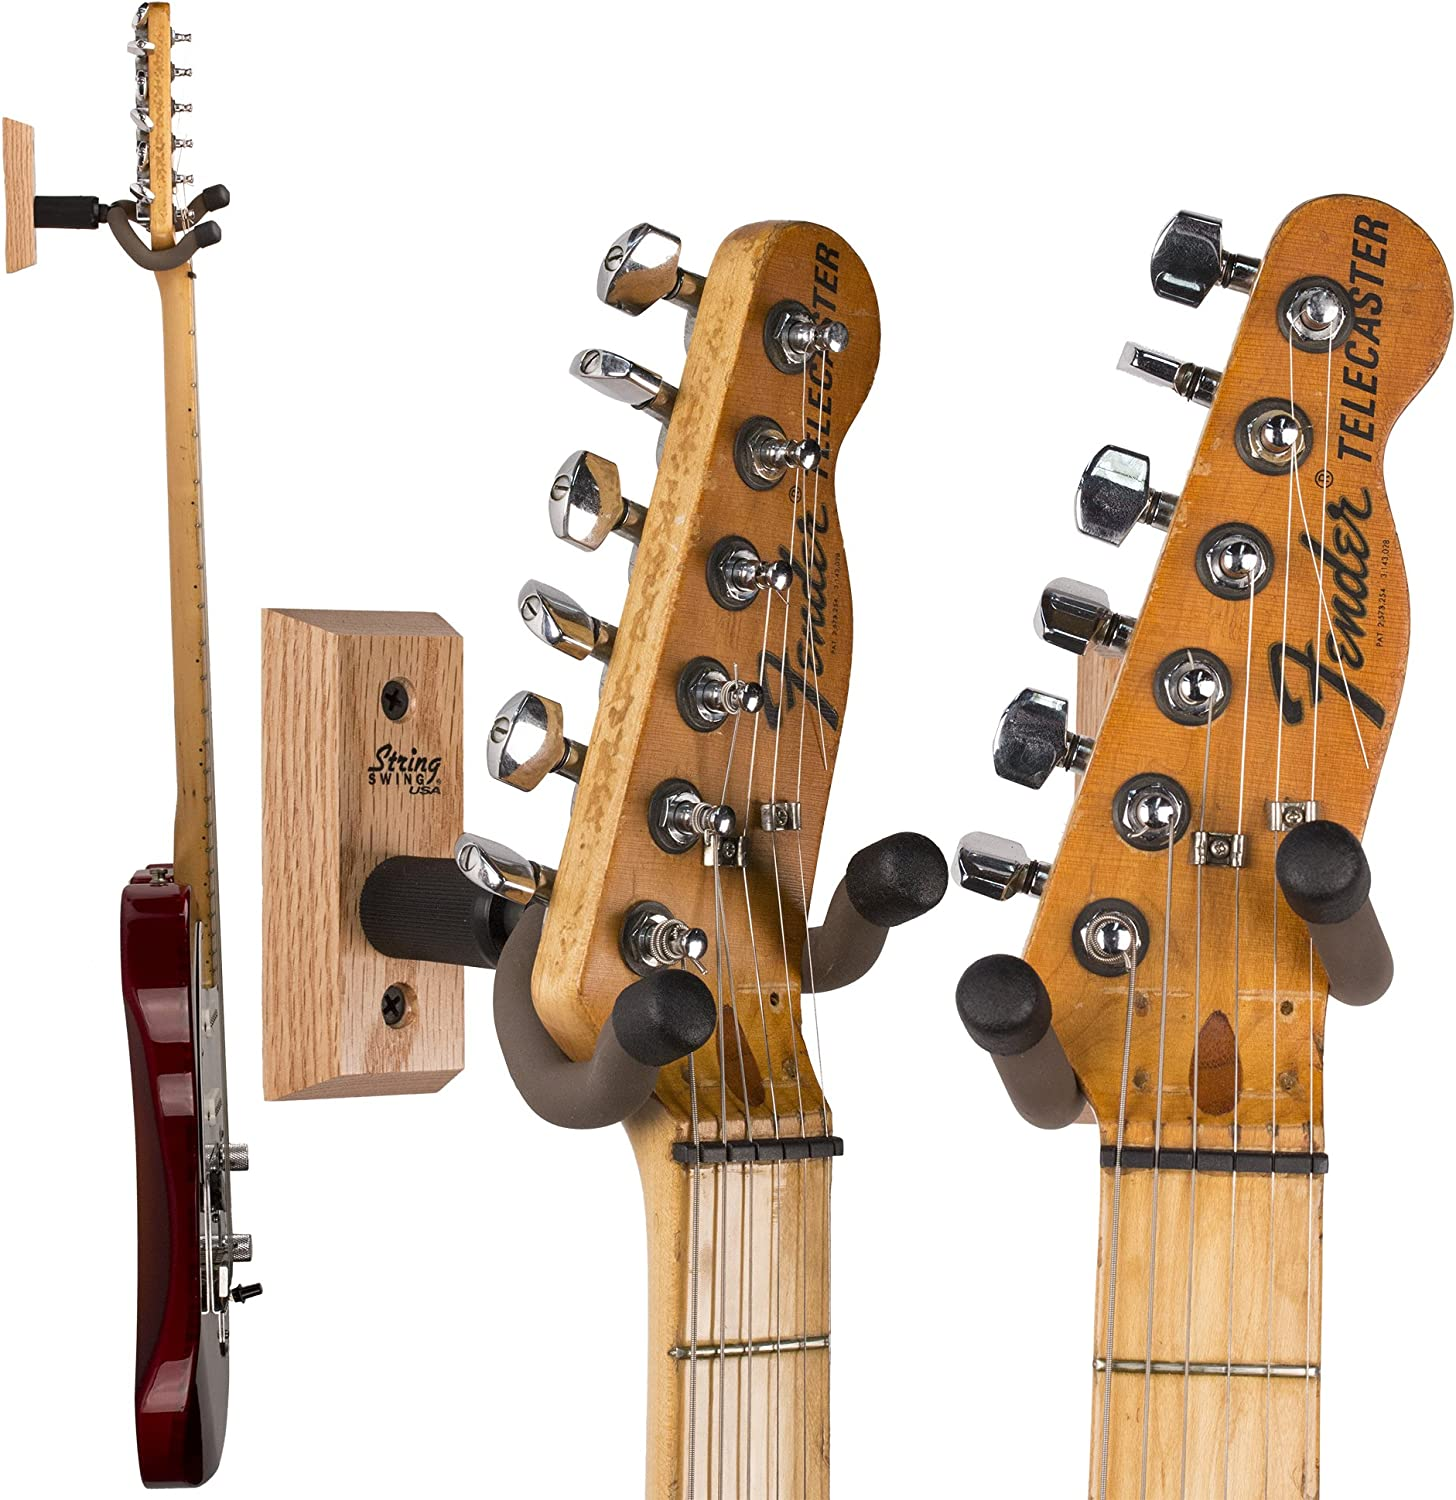 3 Pack CC01K-O3 Oak String Swing Wall Mount Guitar Holder for Electric Acoustic and Bass Guitars Keeps Musical Instruments Safe without Hard Cases Stand Accessories for Home or Studio